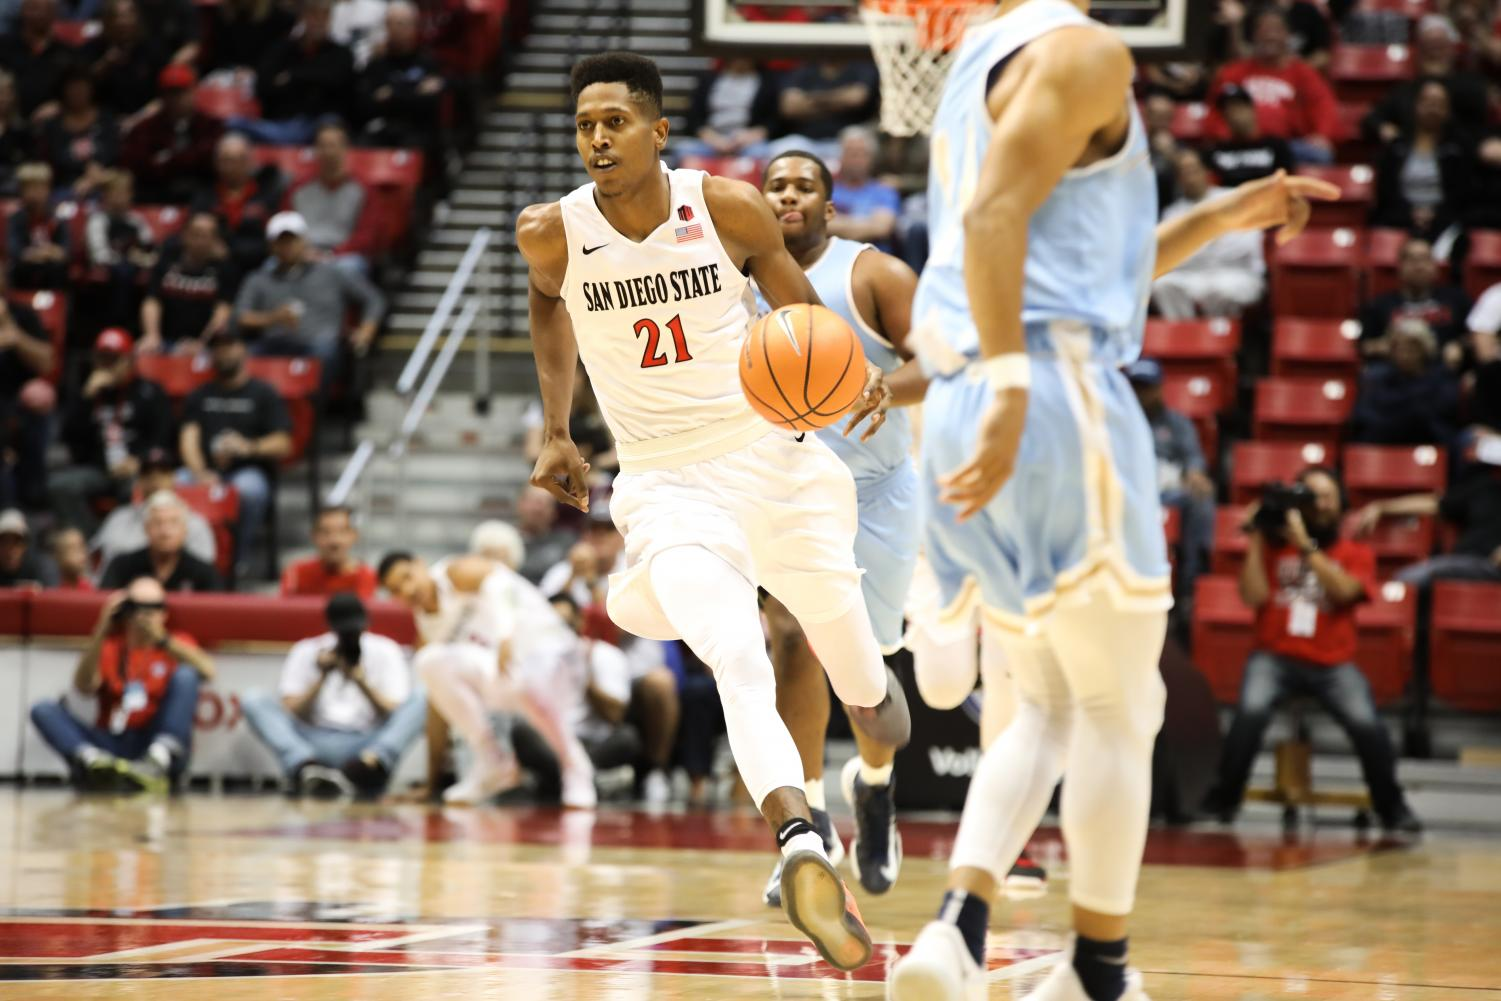 Aztecs basketball player Malik Pope allegedly linked to recruiting scandal